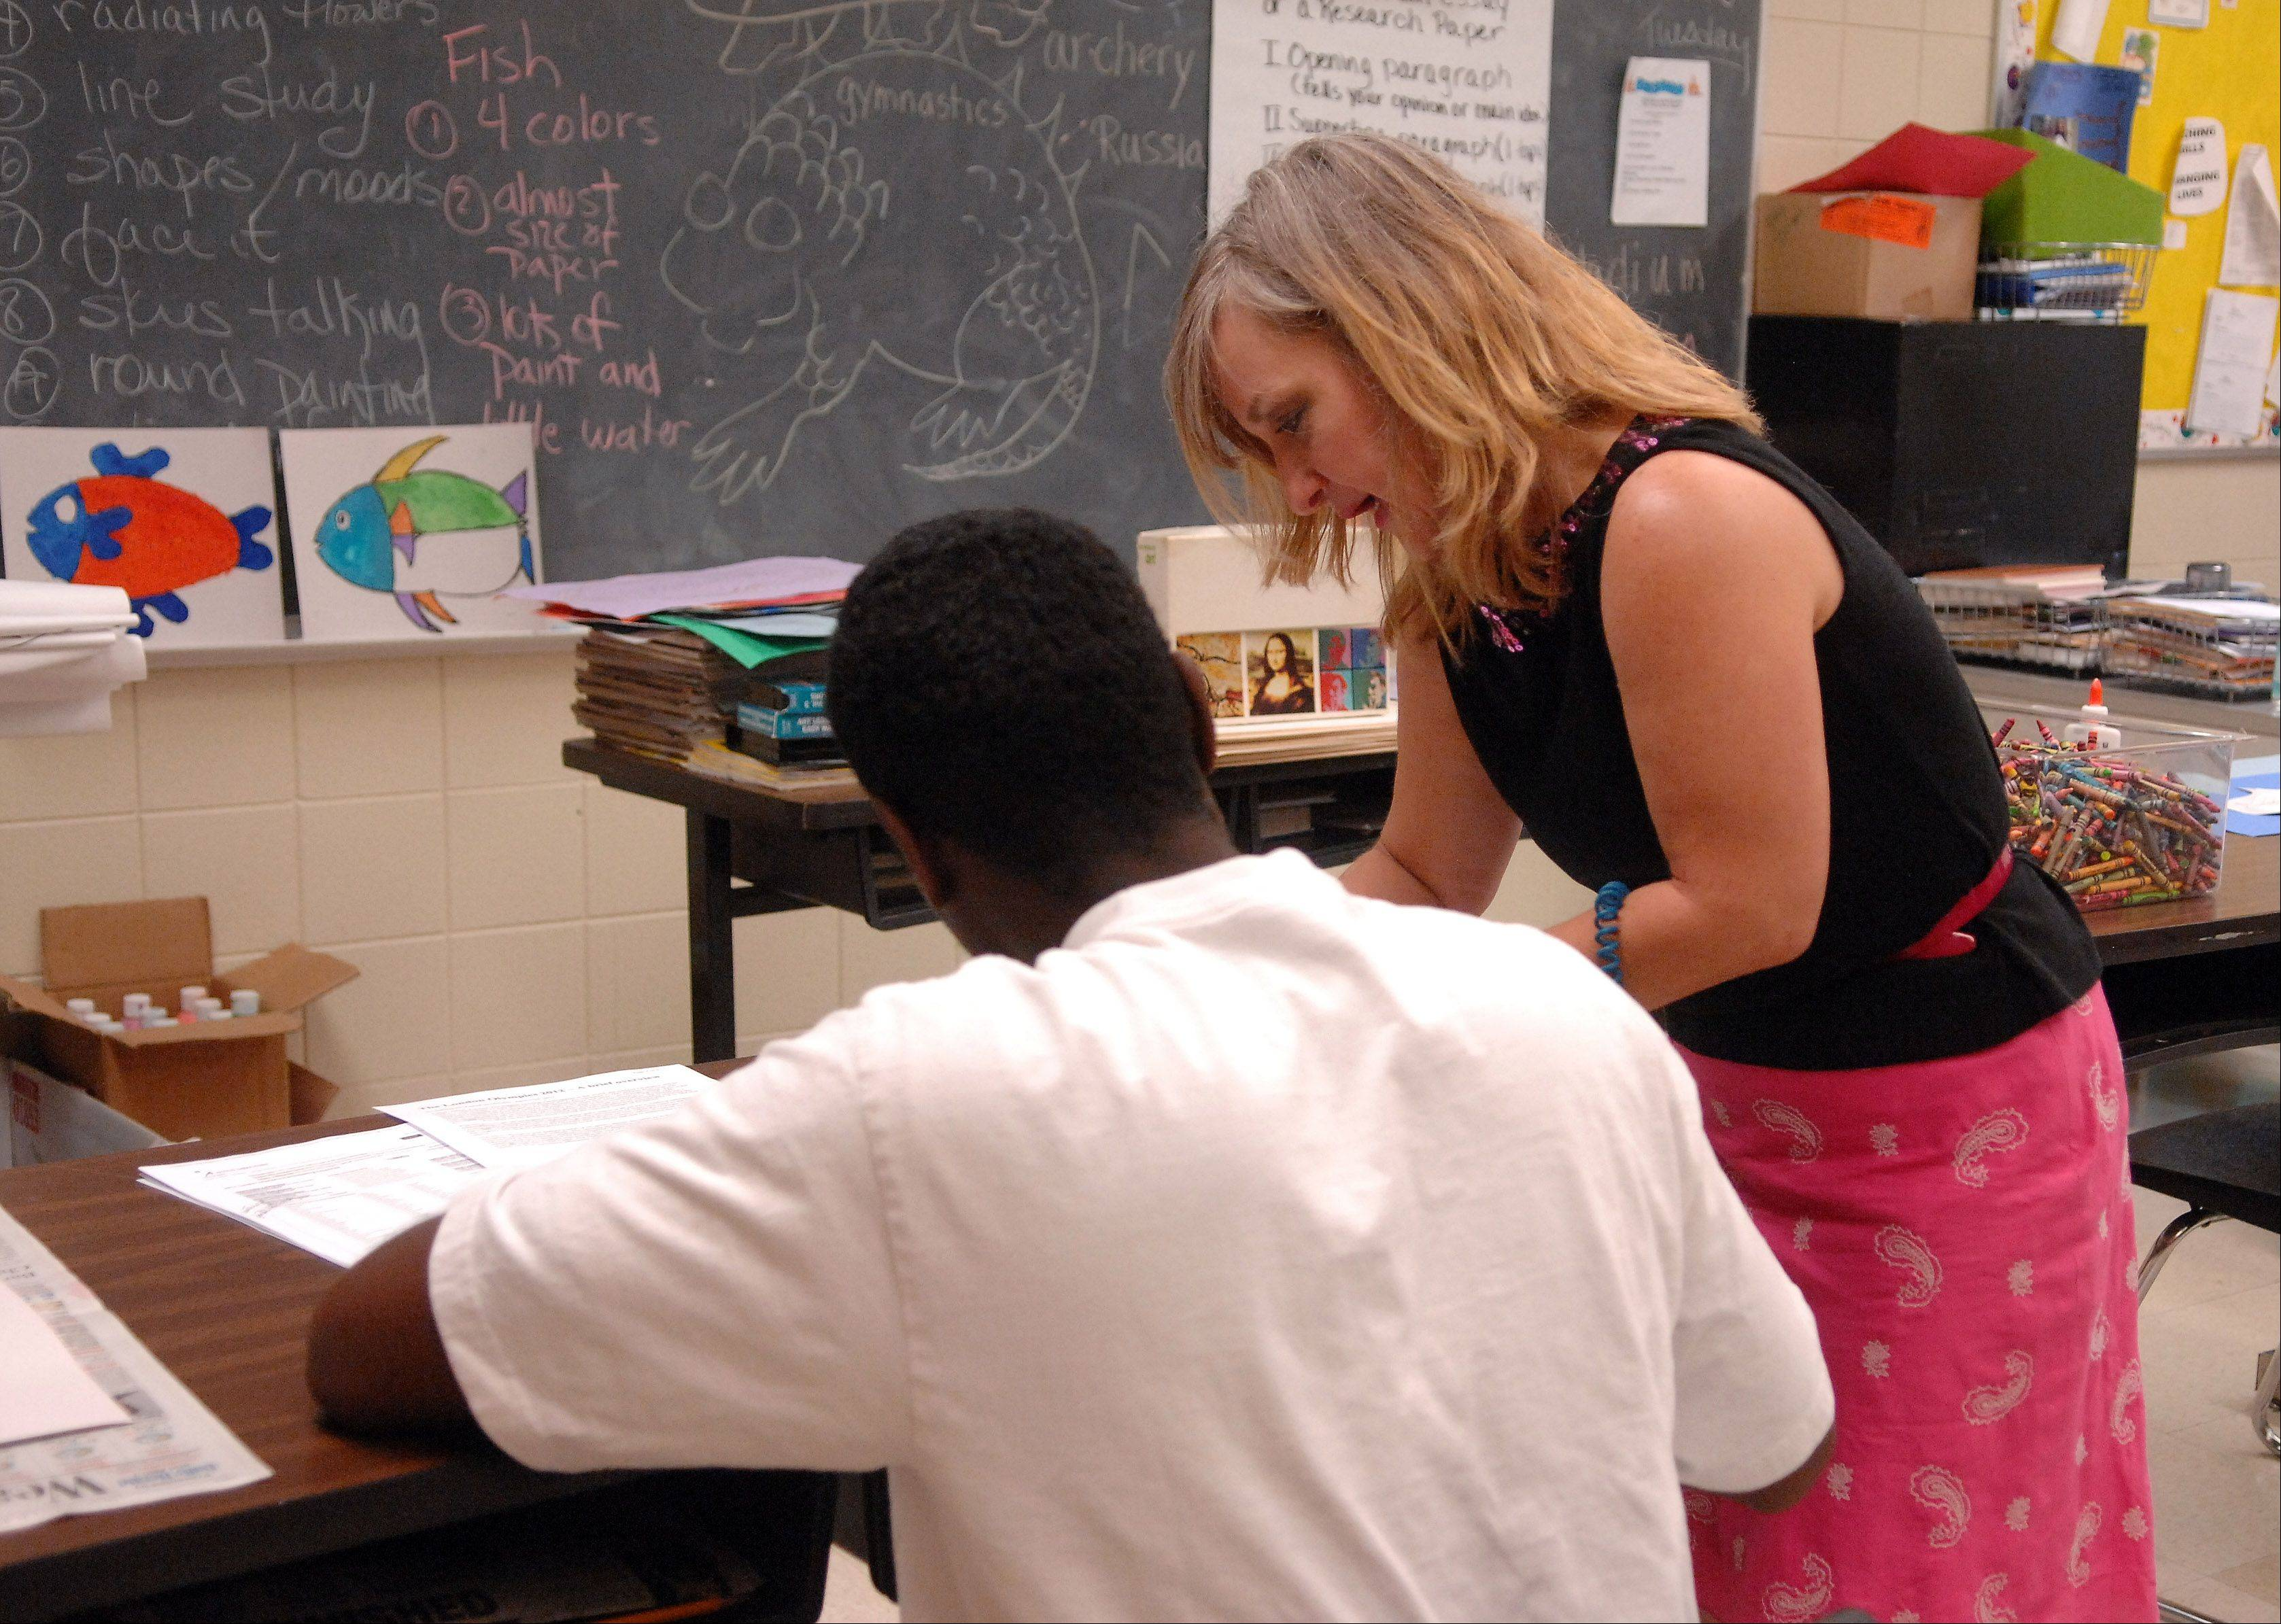 Teacher Dolly McComb works with a student at the Larkin Center School in Elgin Tuesday. Larkin Center School has been selected as a School of Excellence by the National Association of Special Education Teachers, the highest honor that can be bestowed on a private school by the professional association.